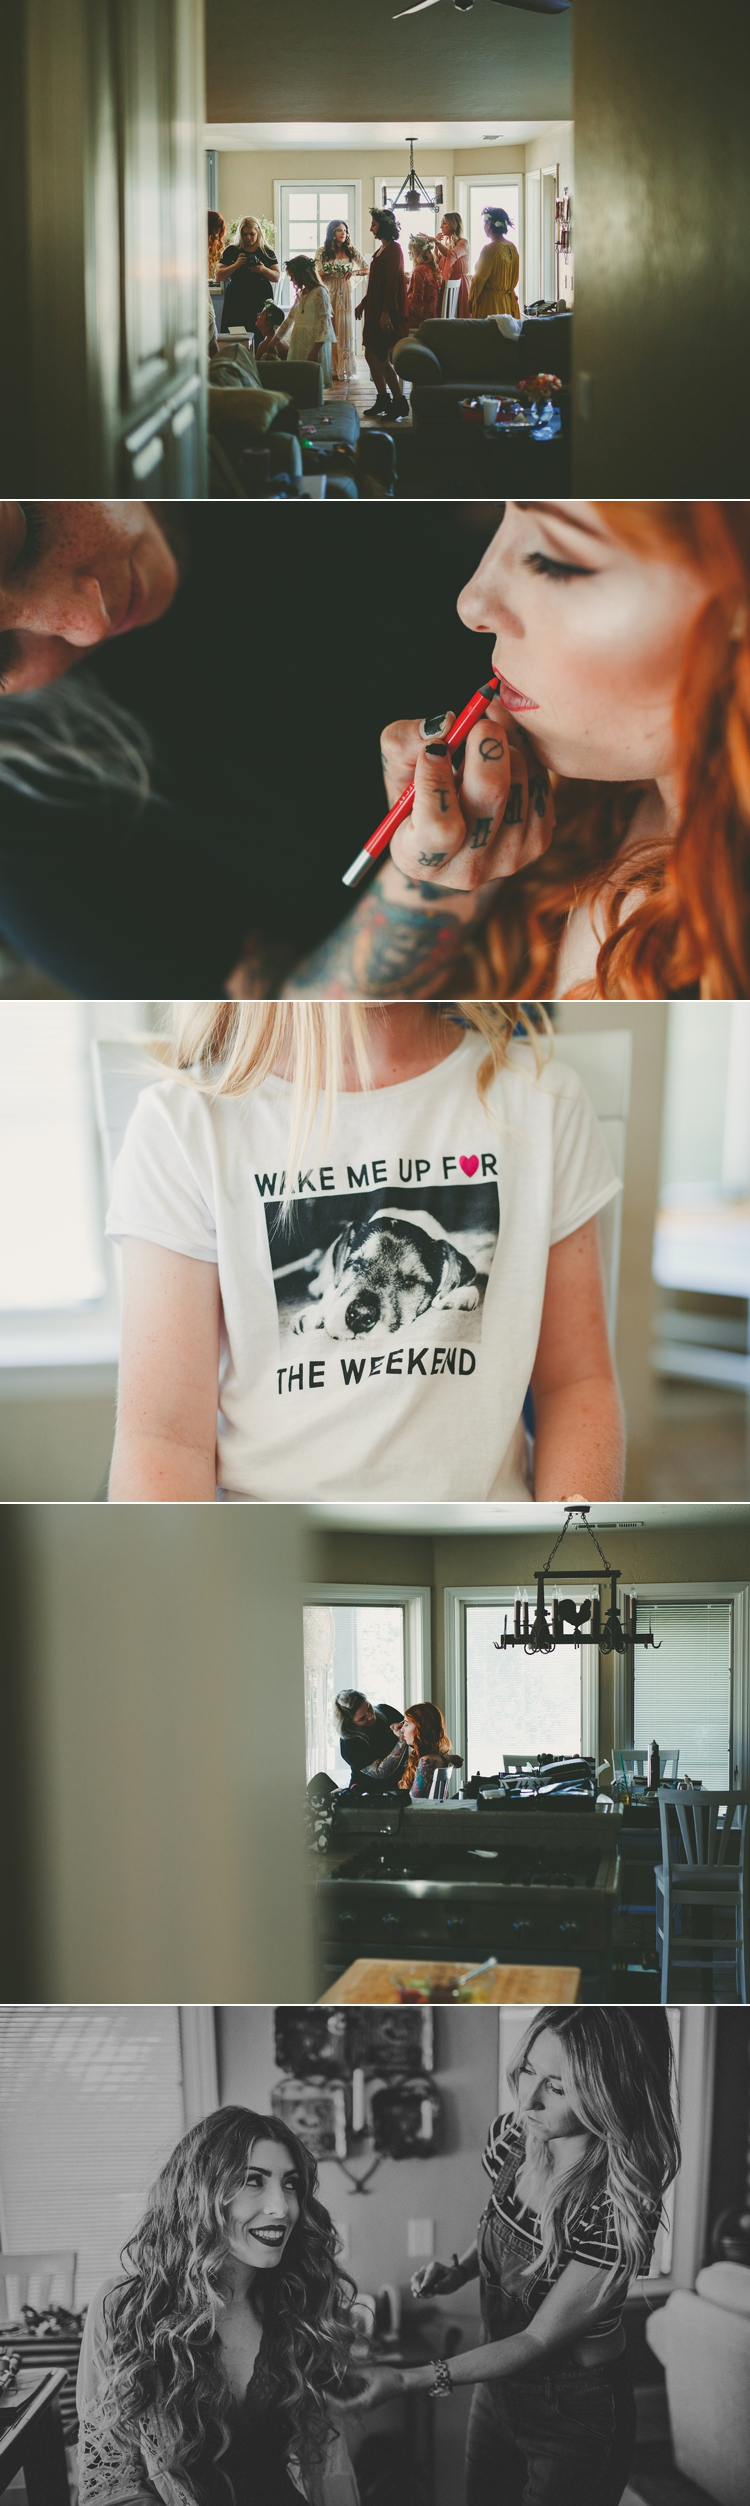 woodstock-inspired-wedding-photos-1